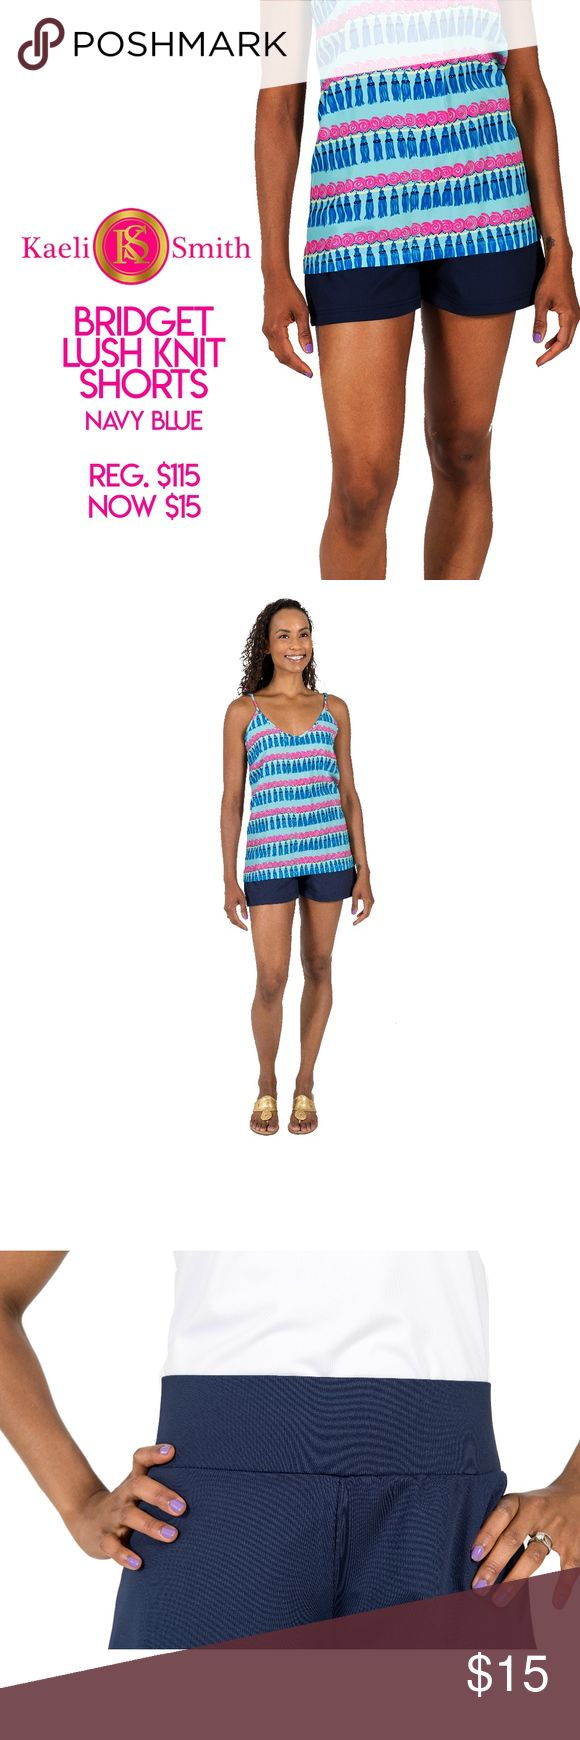 """*NWT* Kaeli Smith """"Bridget"""" Shorts With easy and comfortable pull-on style, our Bridget Short will become a staple of your warm weather, vacation and resort wear wardrobe. The thick waistband resists rolling and our signature Lush Knit fabric moves with you throughout a busy day.   No-roll waistband sits between natural waist and hips Modest flair to the hem Signature Lush Knit performance fabric UPF 50 Will not fade Wrinkle-free Machine wash, no bleach, cool iron if needed Polyester/Spandex…"""